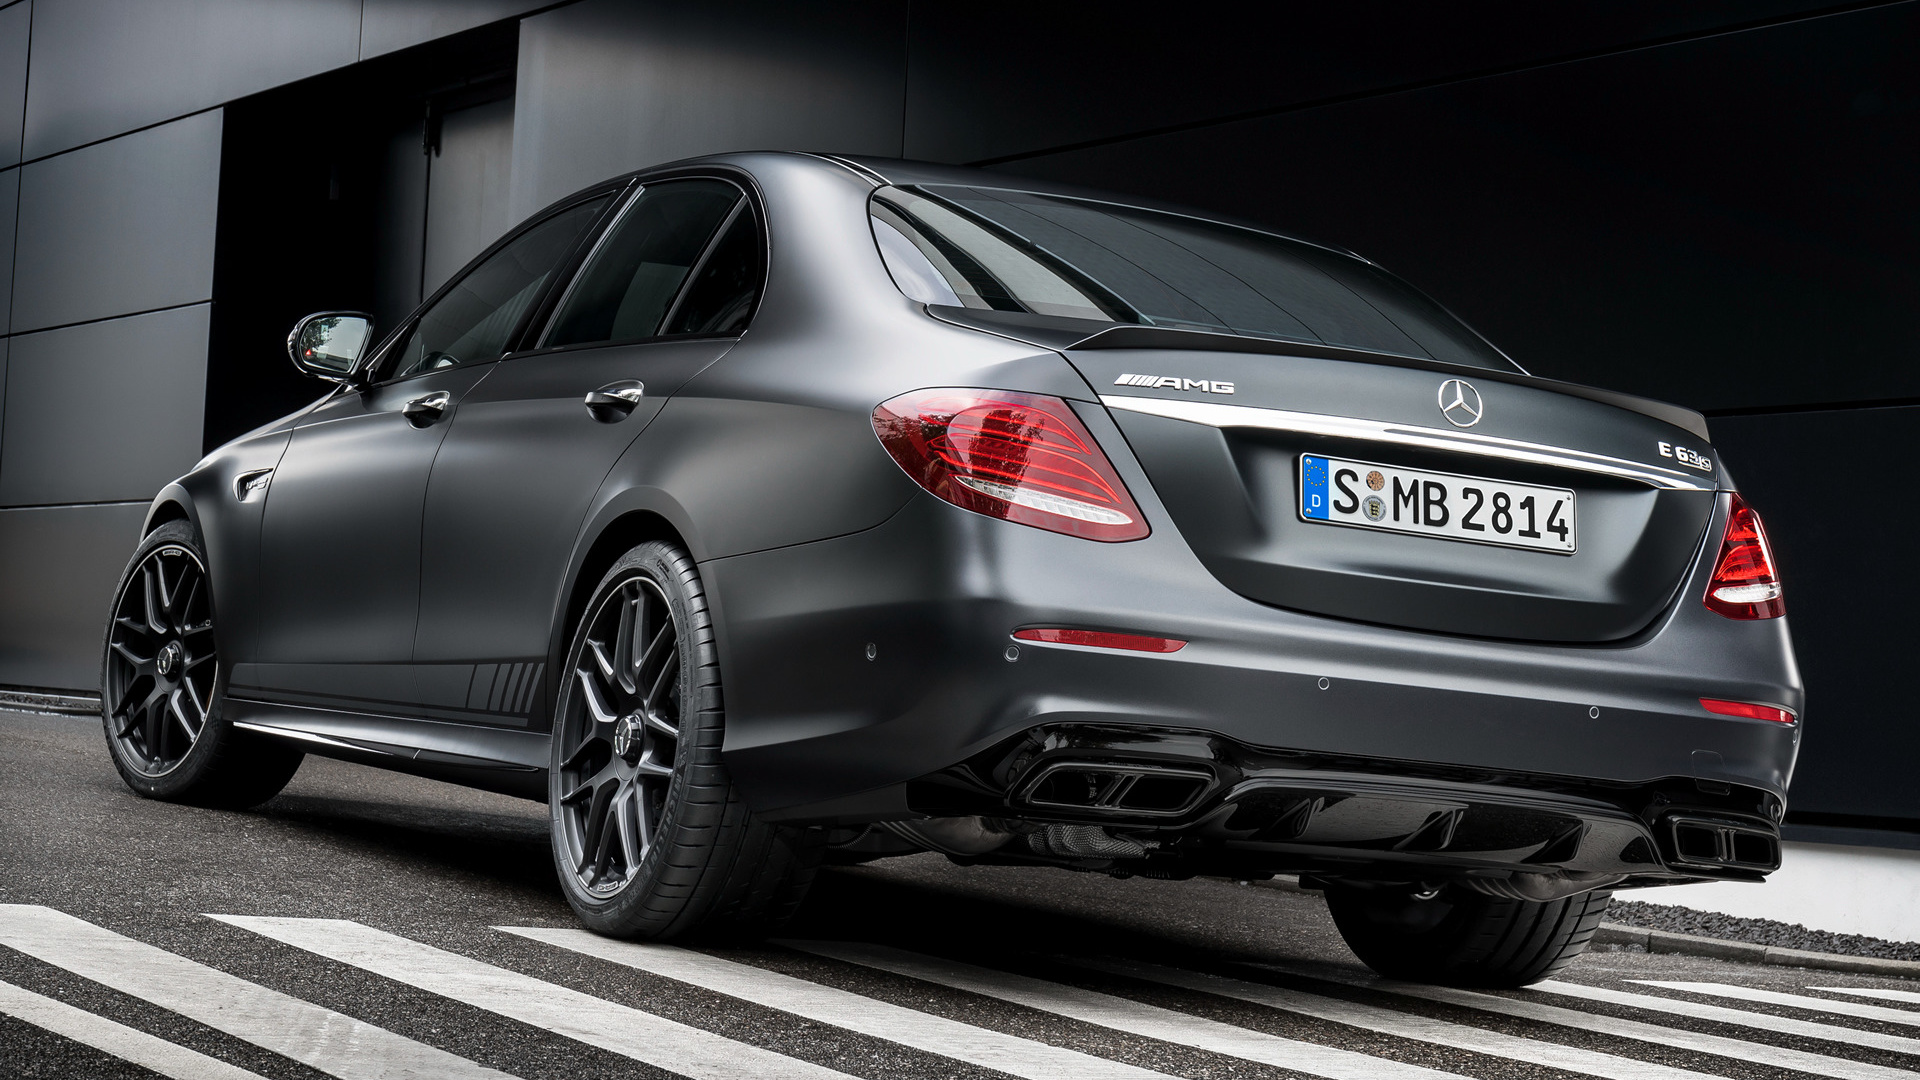 2017 Mercedes Benz C Class >> 2017 Mercedes-AMG E 63 S Edition 1 - Wallpapers and HD ...